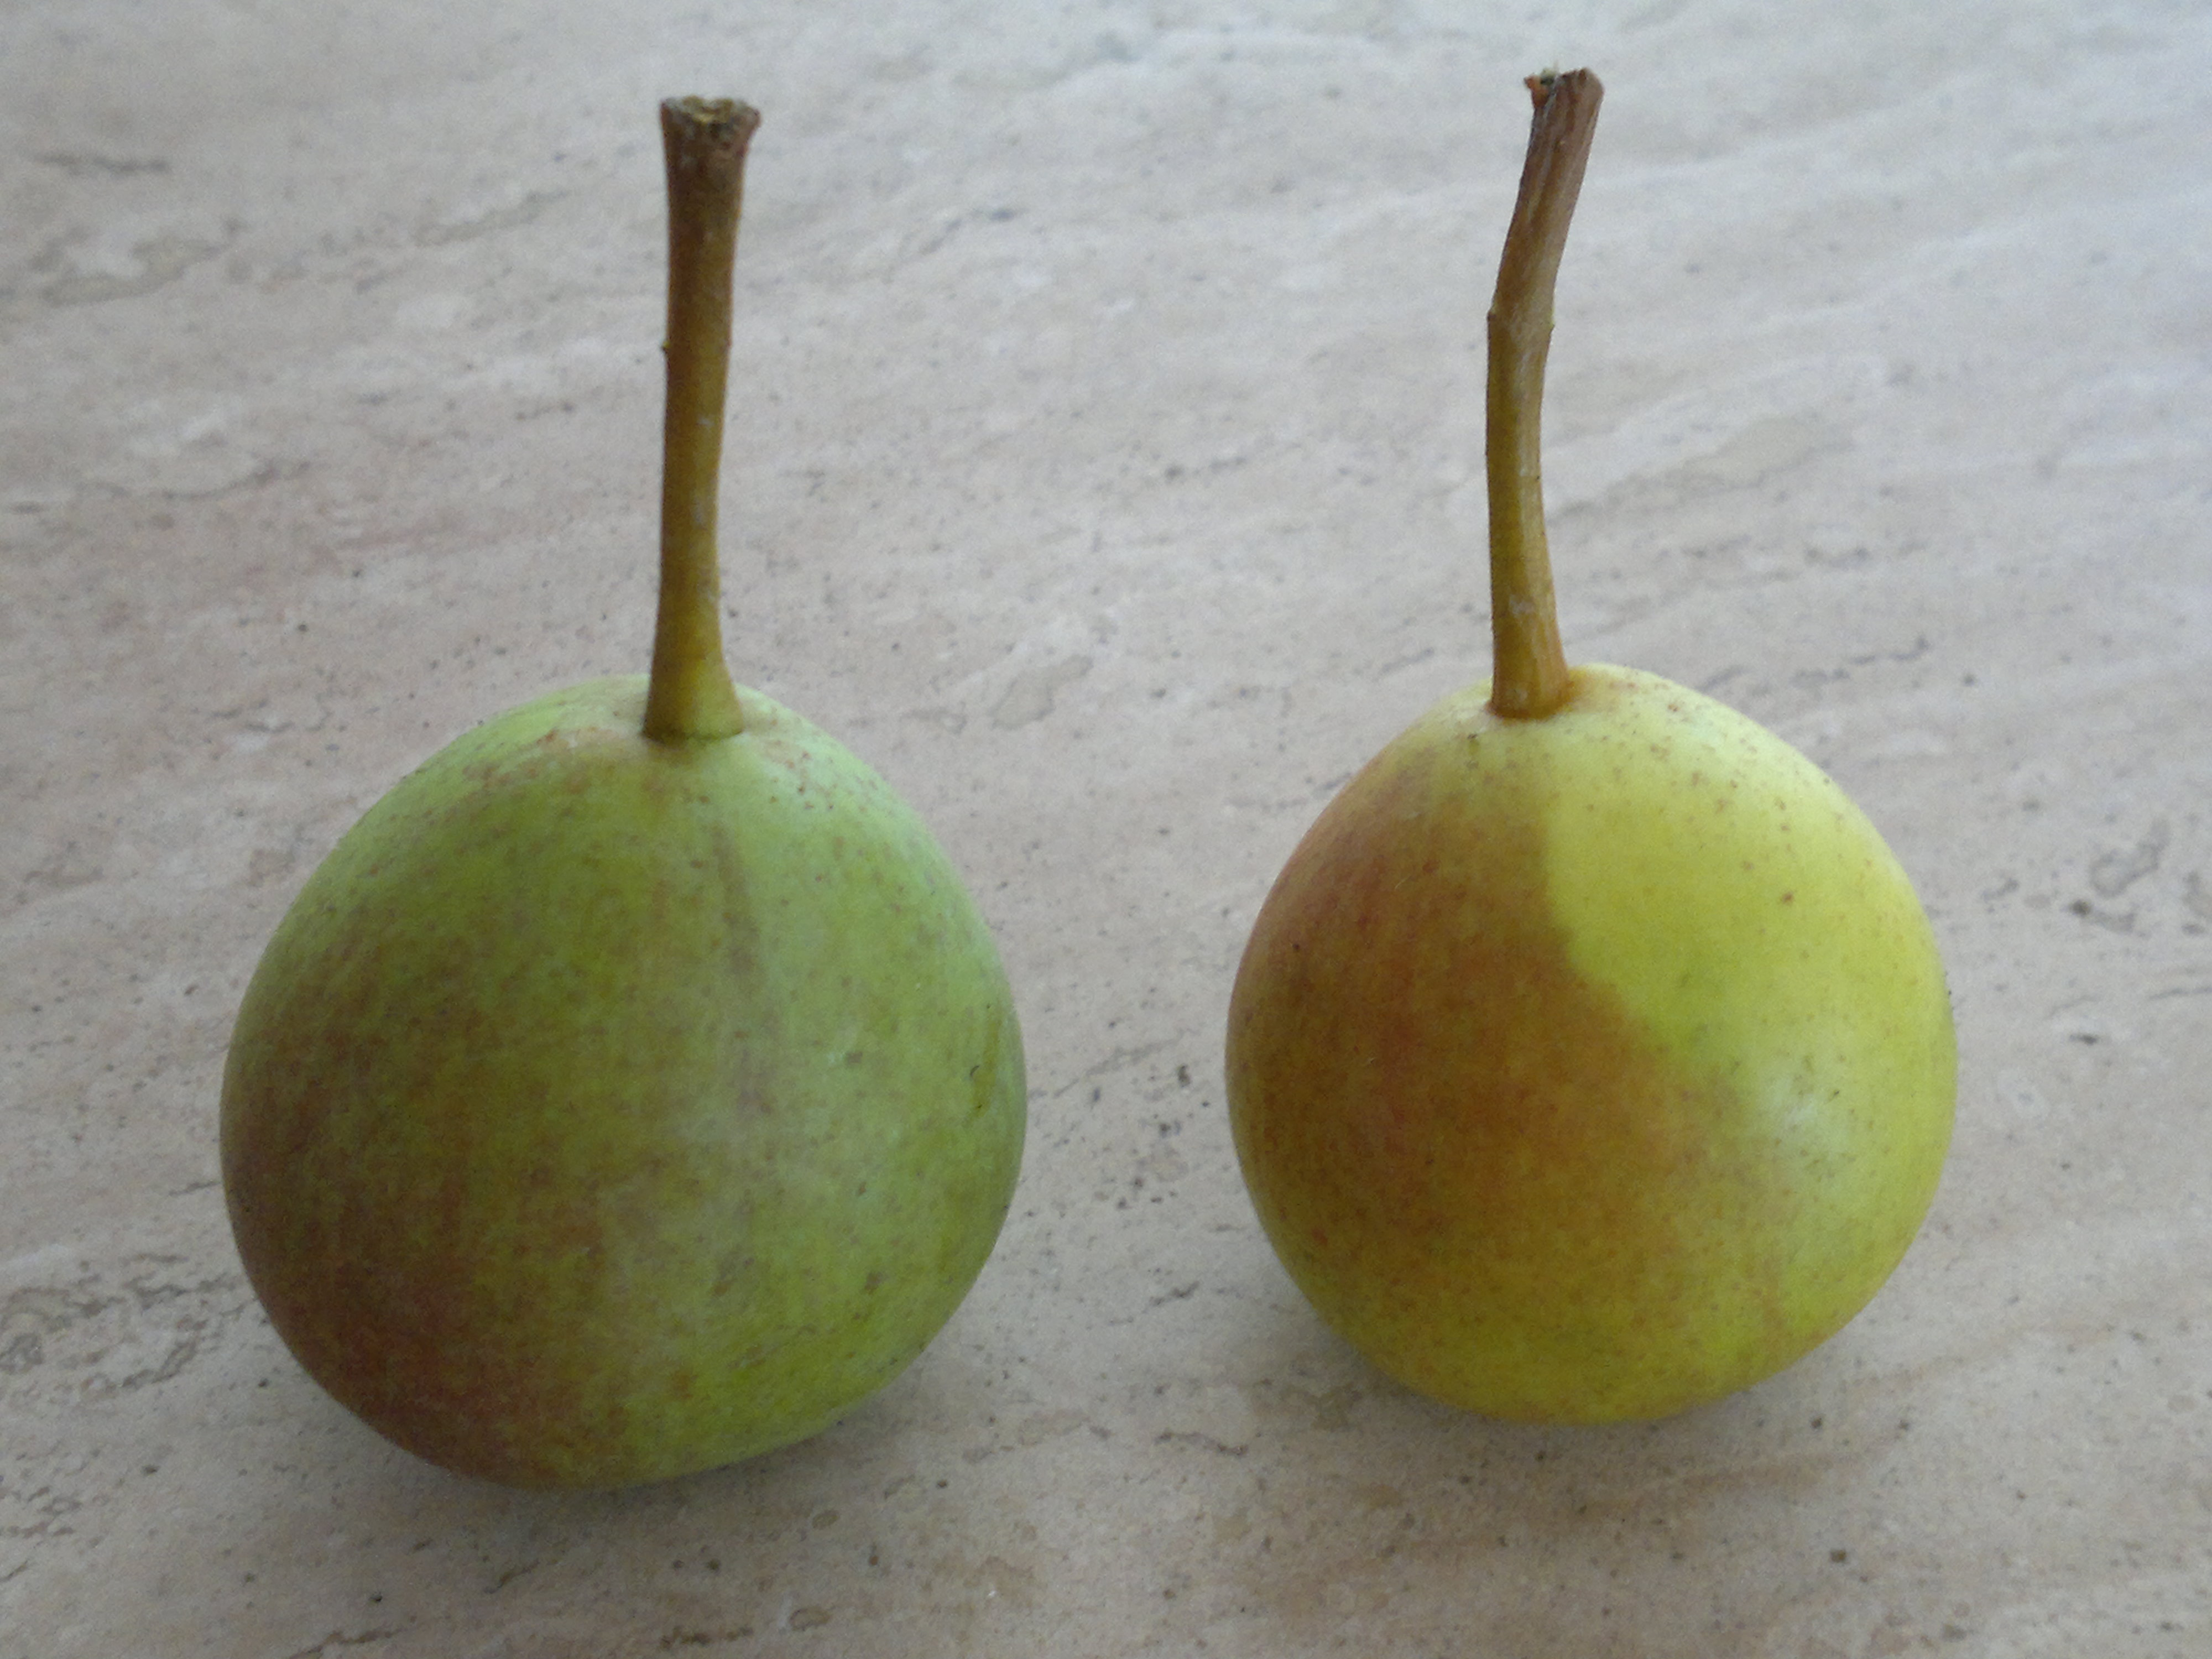 Judging the ripeness; the pear on the left needs a couple of days to ripen, whilst the pear on the right is perfectly ripe, as indicated by the green turning to yellow and the dull flushing to crimson